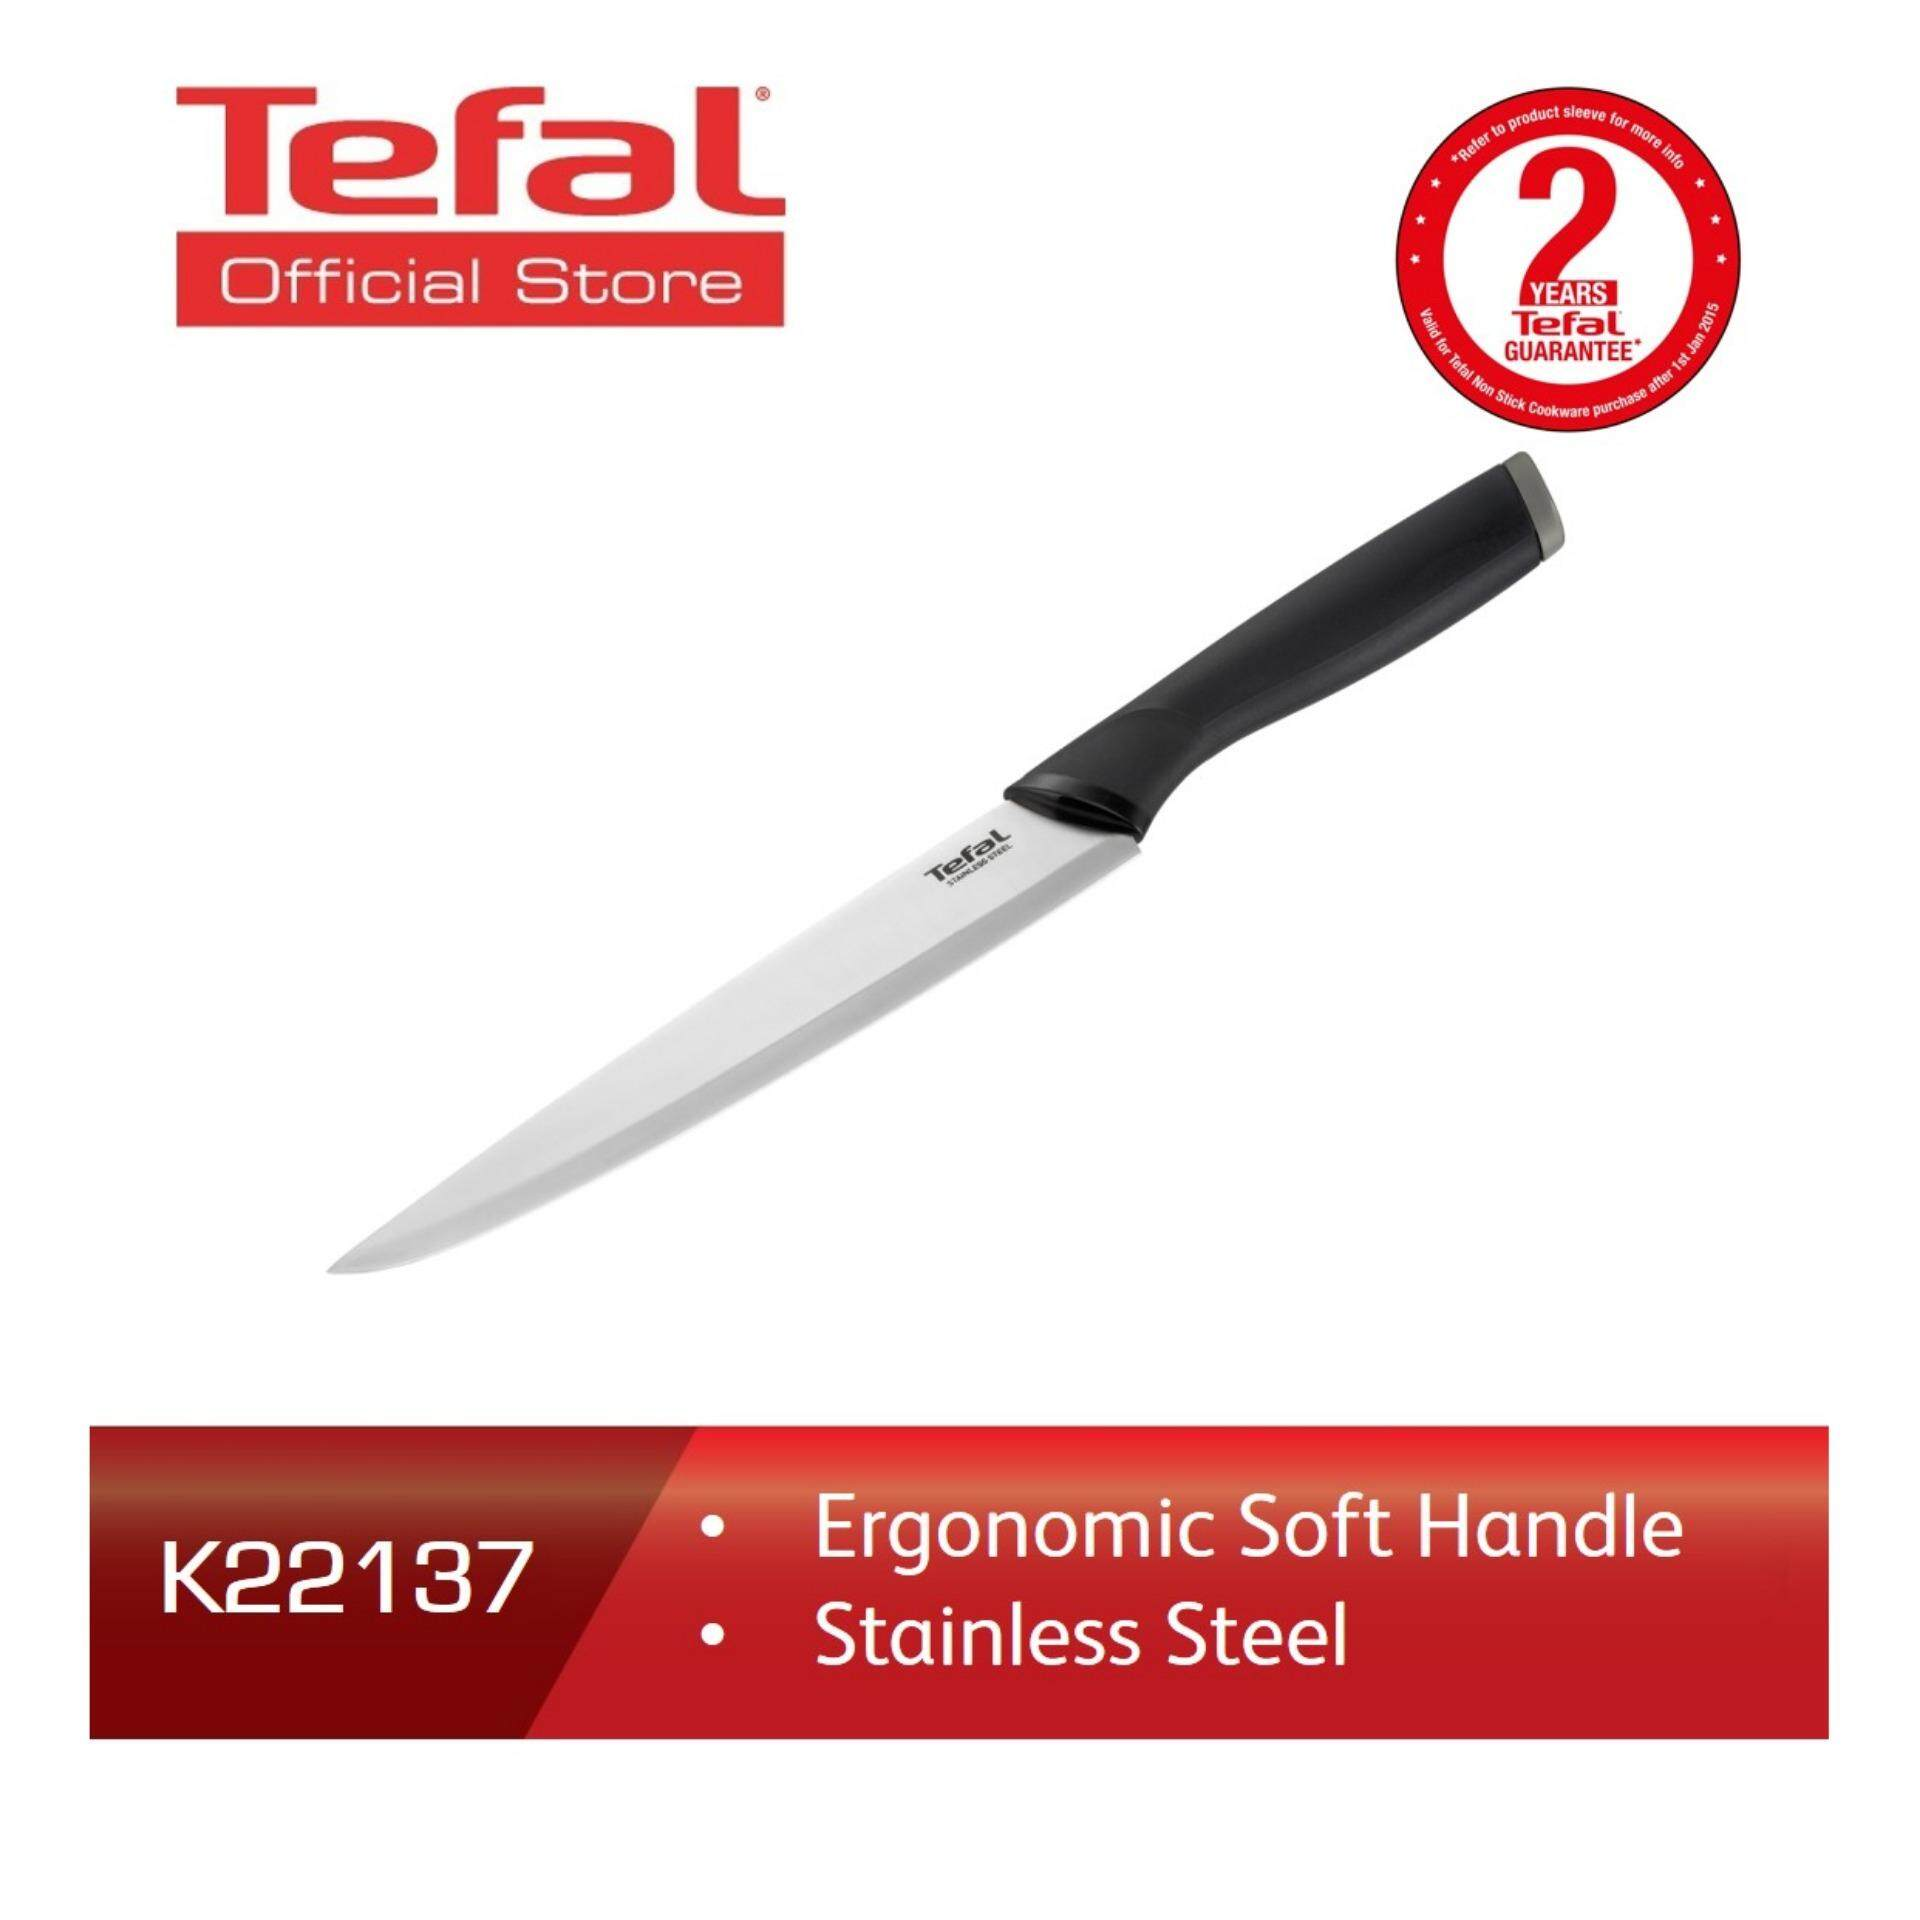 Home Knives & Accessories - Buy Home Knives & Accessories at Best ...